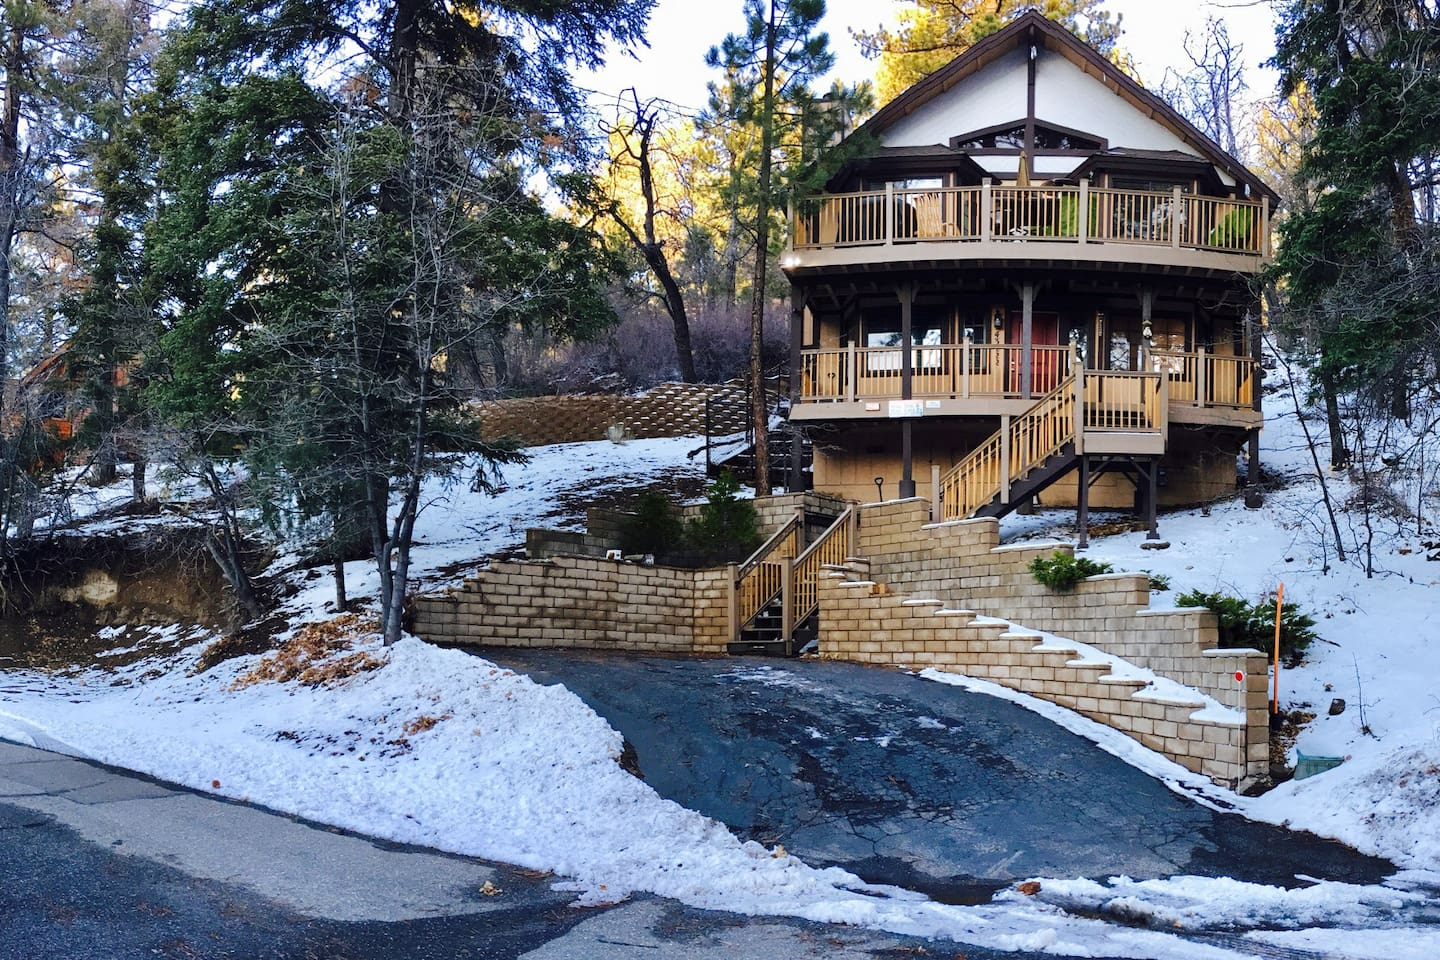 so mountain hot pin pet rentals your cabin a you with big fireplace friendly and owner will dog tub views view lake in lodge by bear cabins rental love